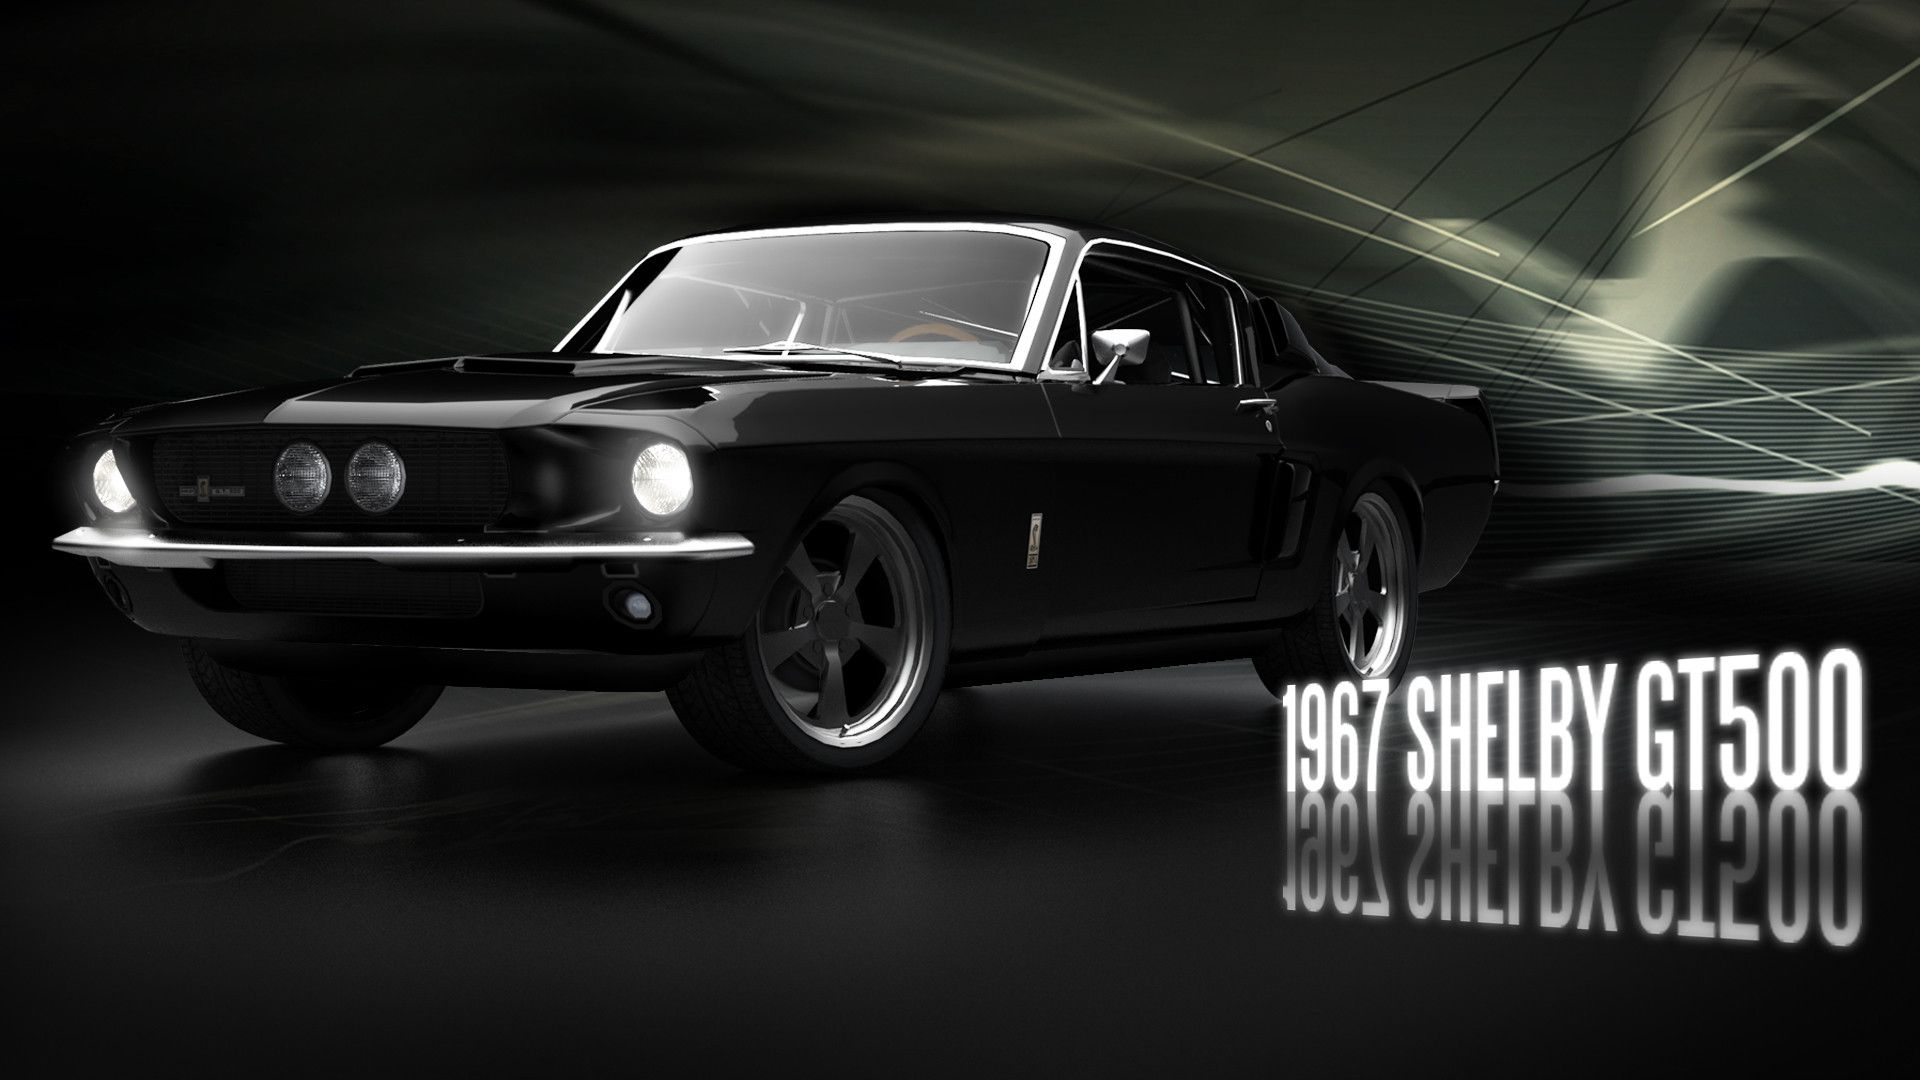 1967 Shelby GT500 Widescreen for desktop